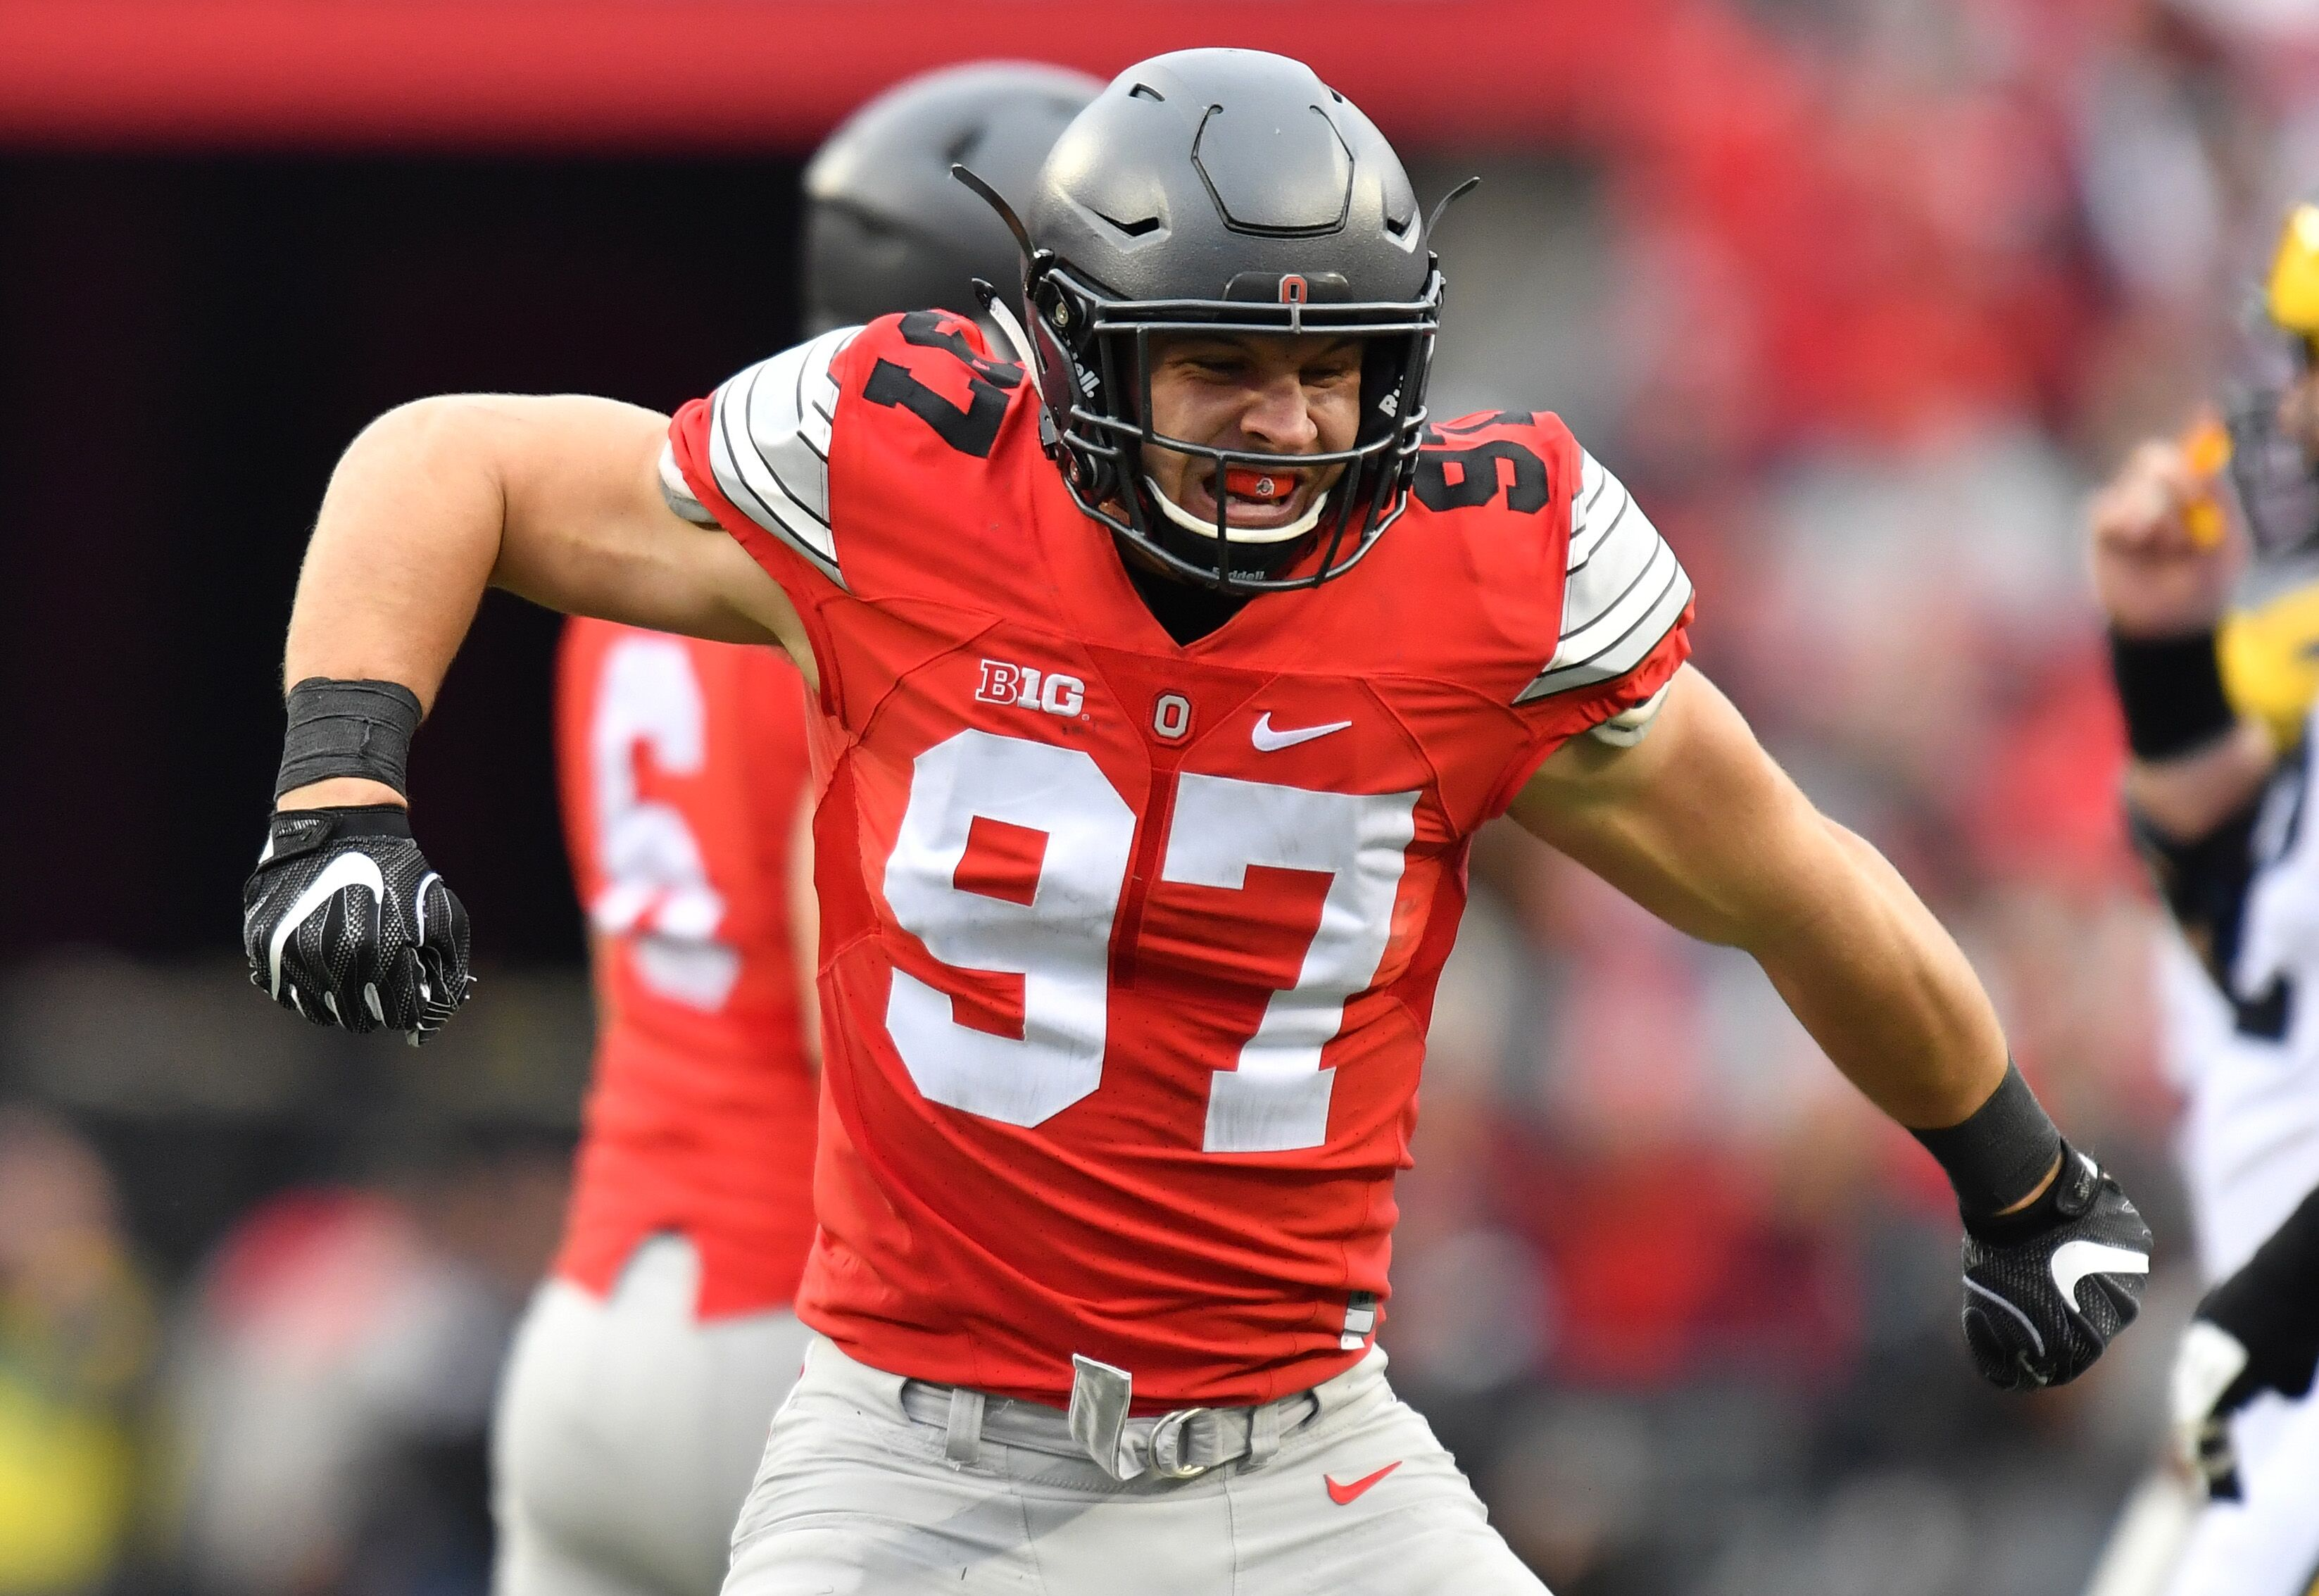 The Ohio State football team looked strong last Saturday b41e3046c